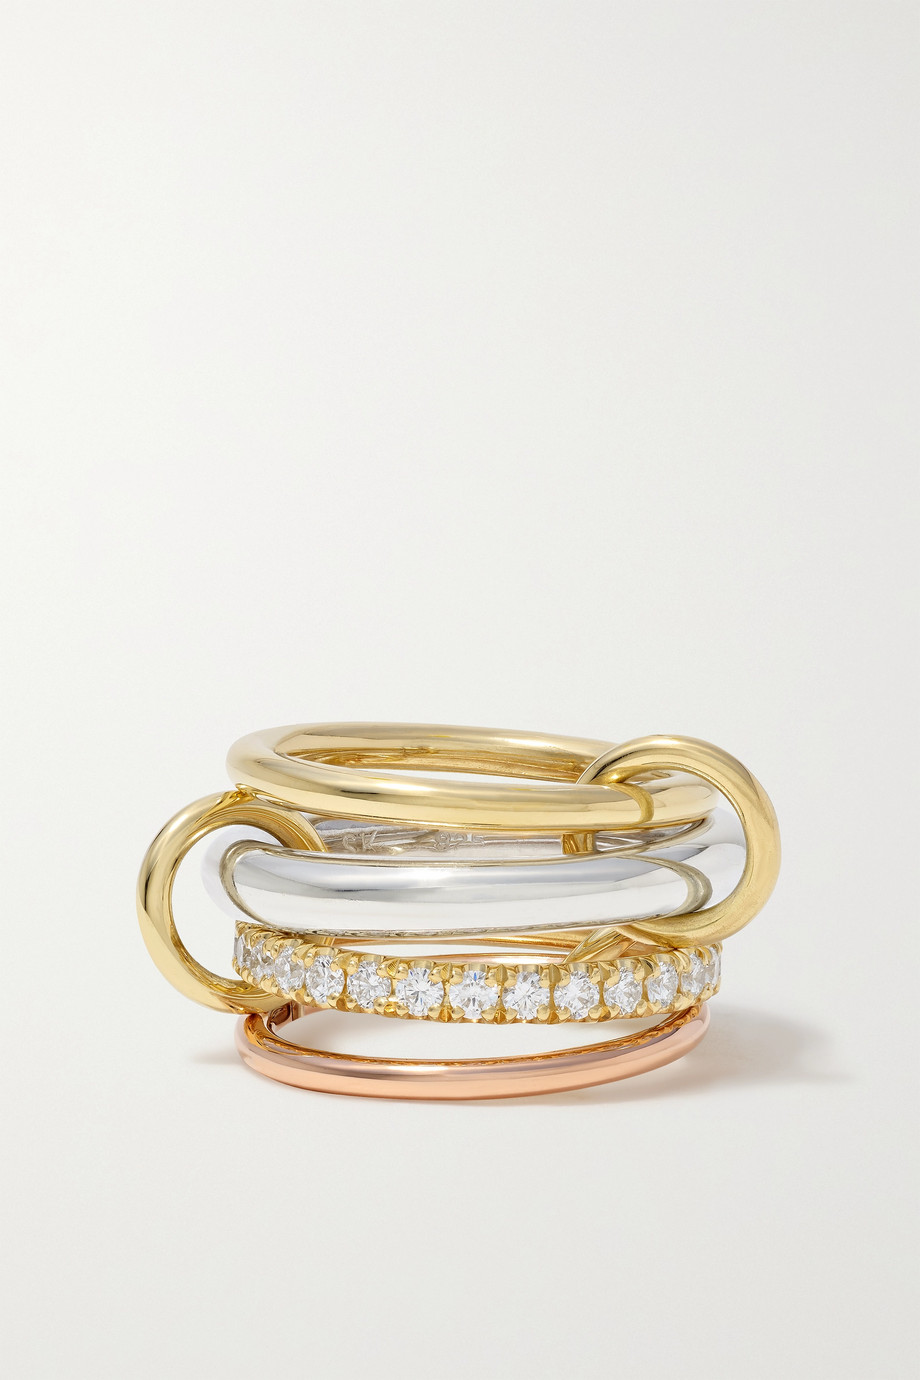 Spinelli Kilcollin Janssen set of four 18-karat yellow and rose gold and sterling silver diamond rings